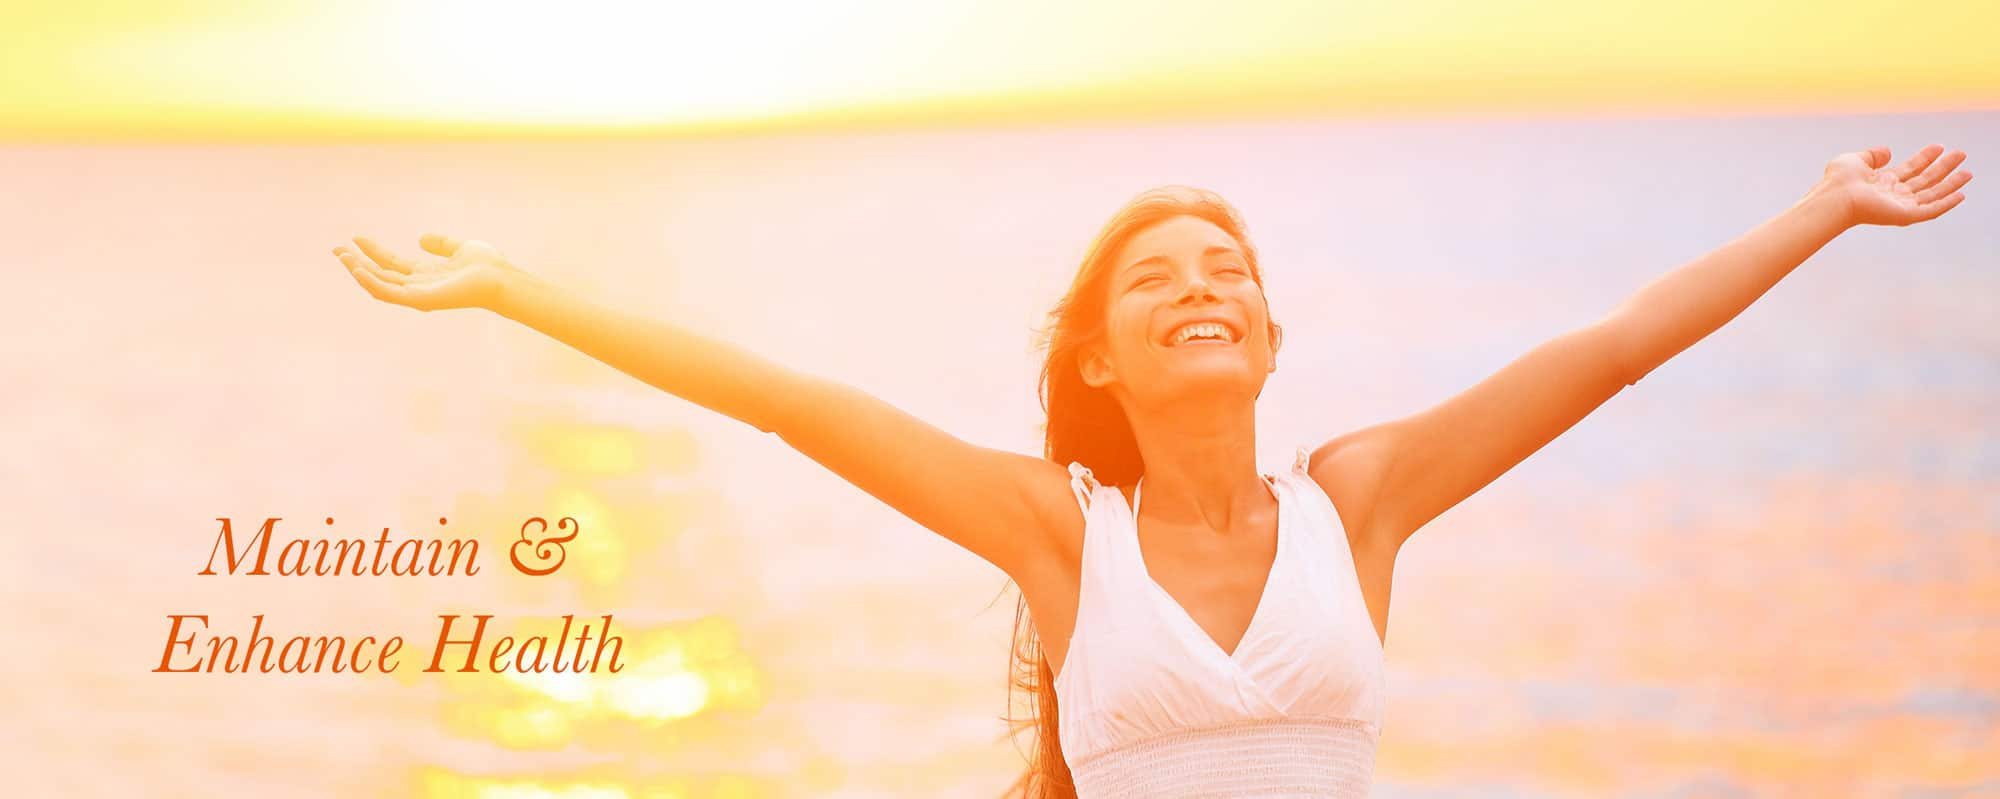 Woman smiling with hands in the air near ocean